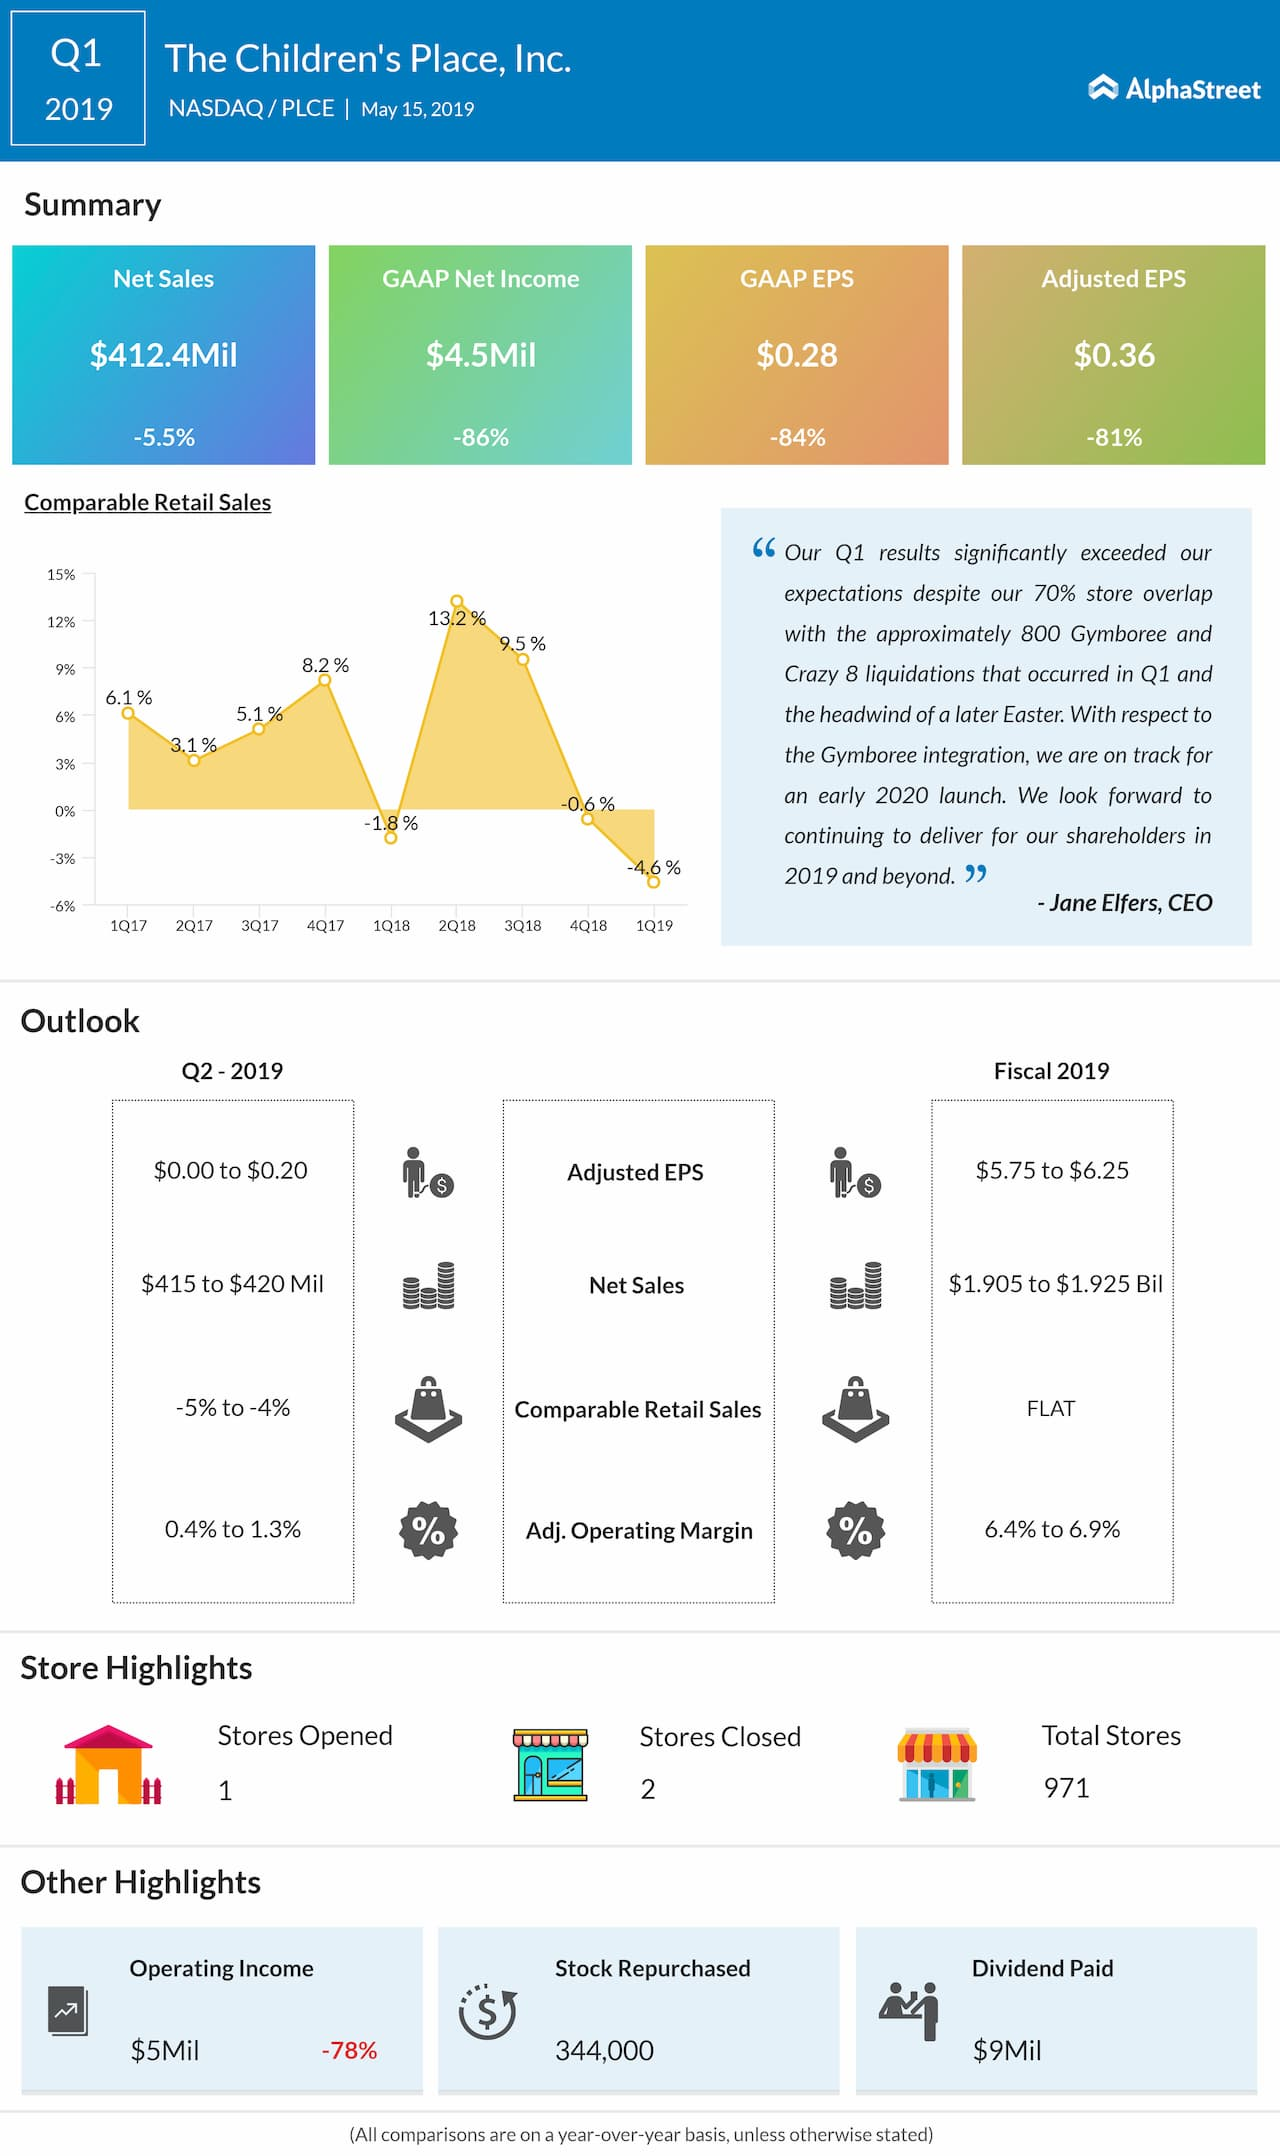 The Children's Place first quarter 2019 earnings snapshot